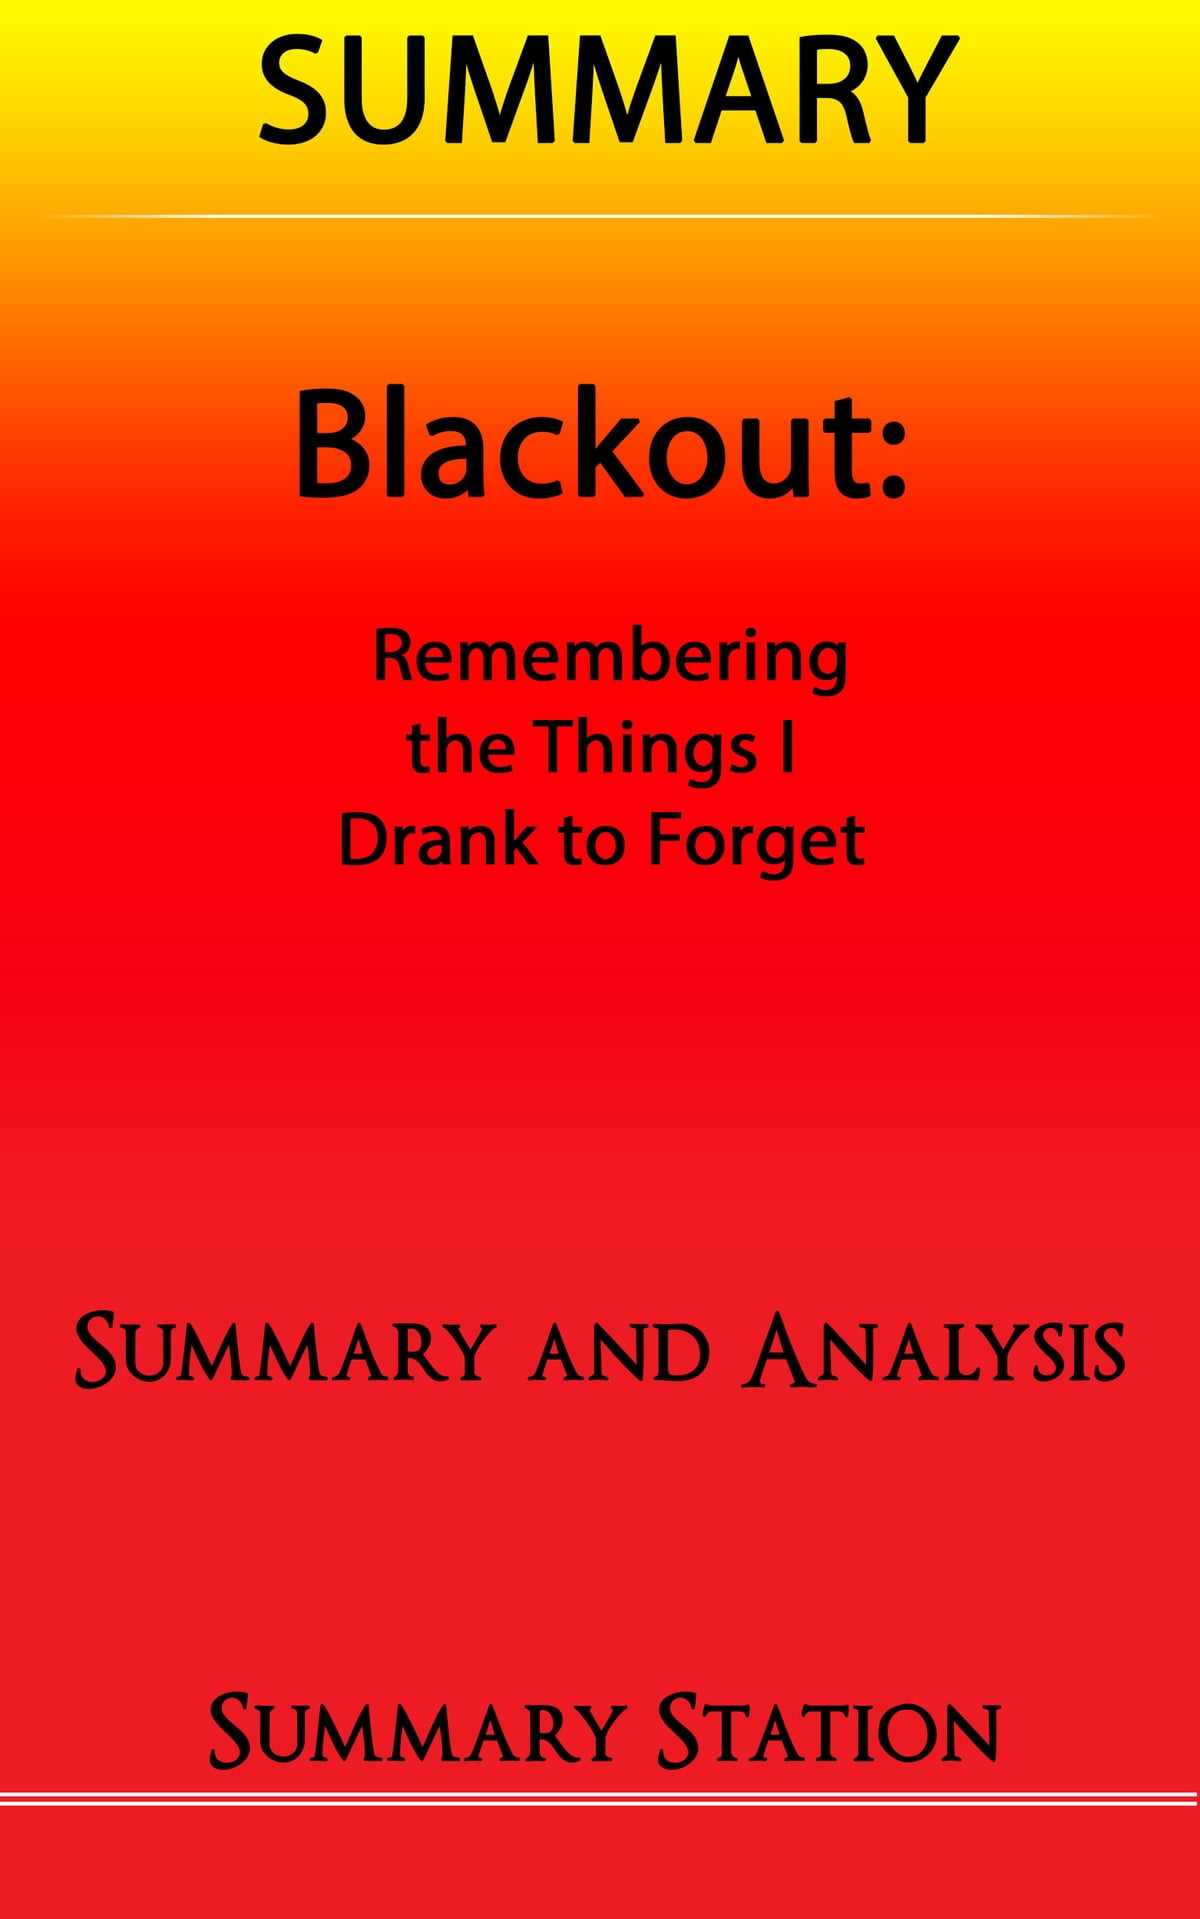 blackout remembering the things i drank to forget